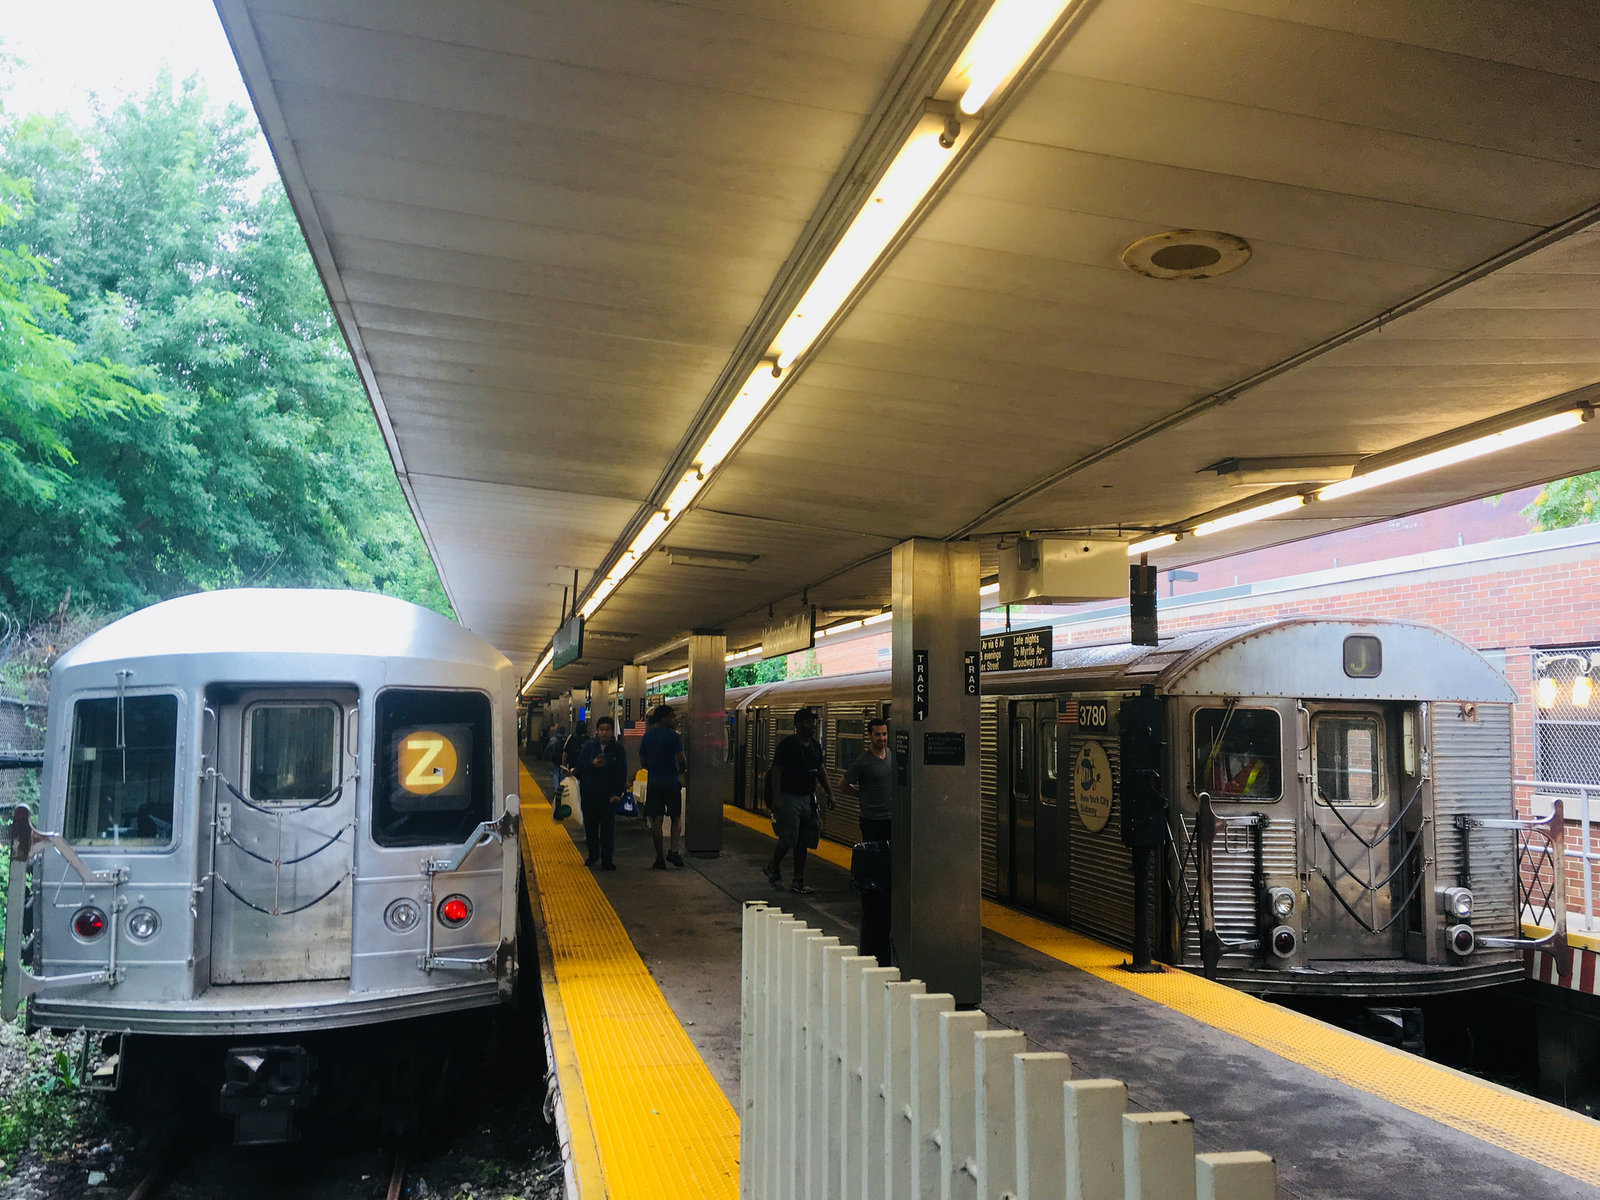 R32 and R42 (J) trains at Metropolitan Av